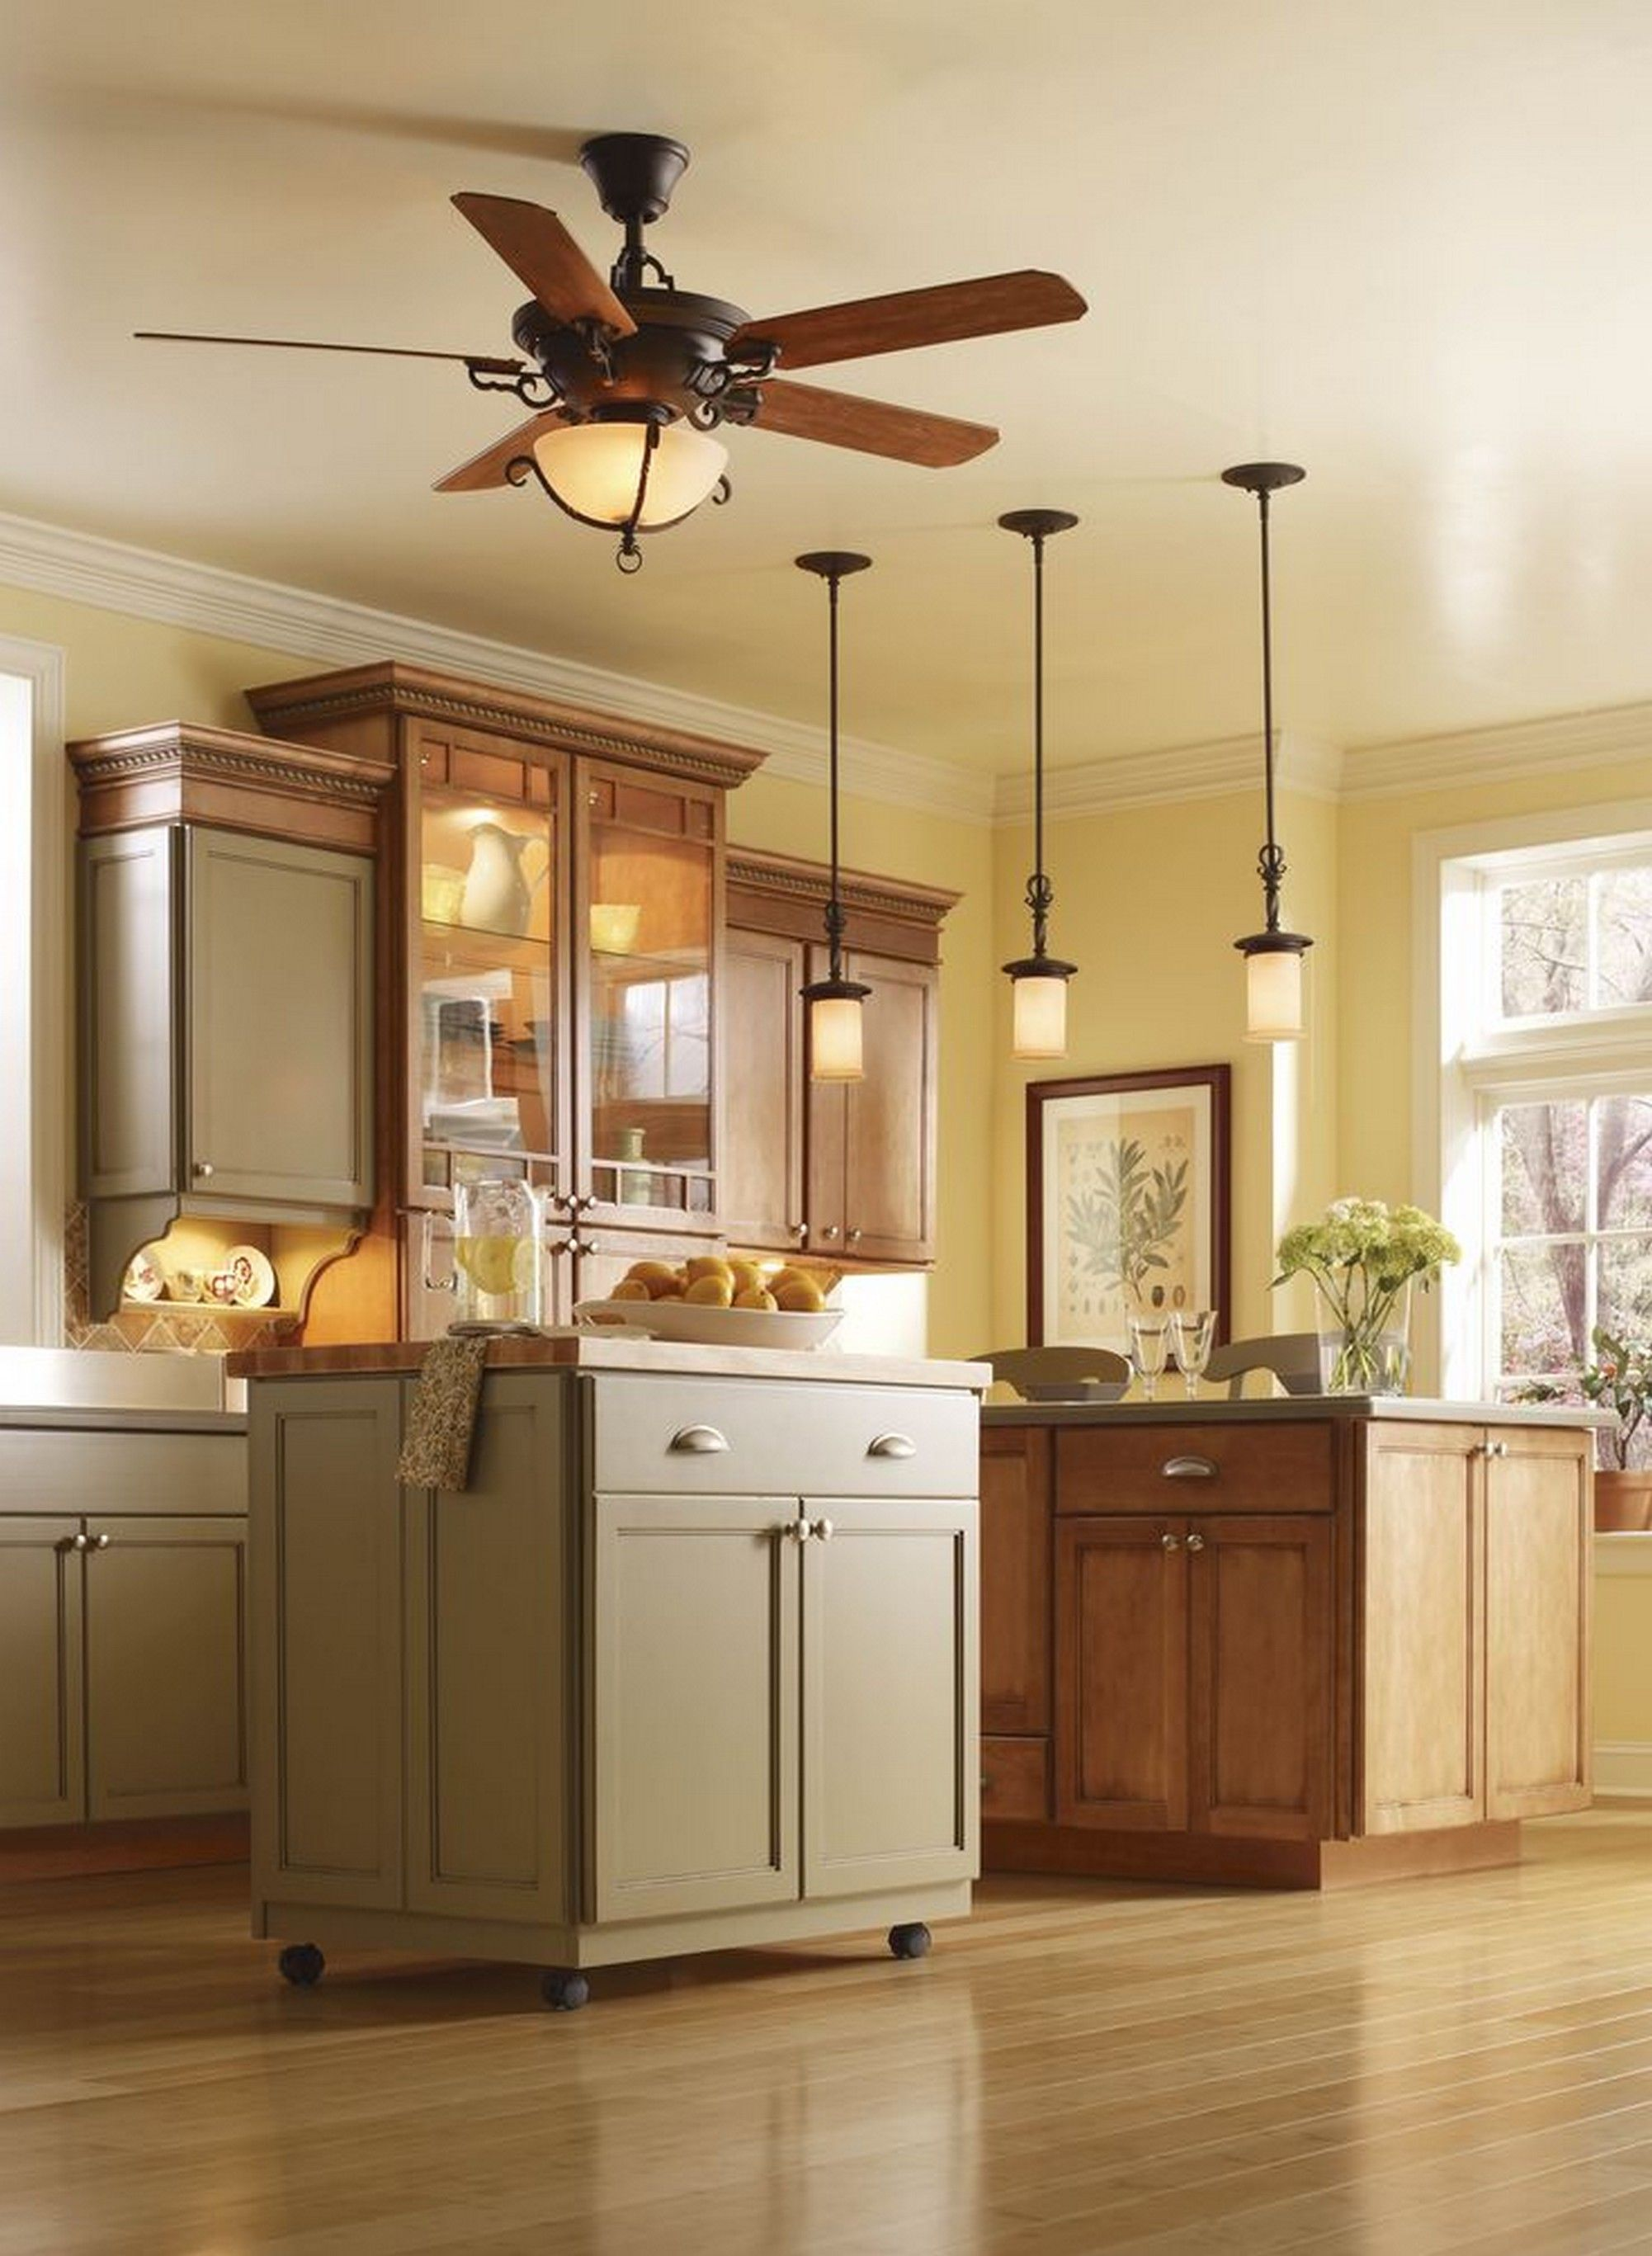 Charmant Small Island Under Awesome Kitchen Ceiling Lights With Wooden Ceiling Fan  On Cream Ceiling